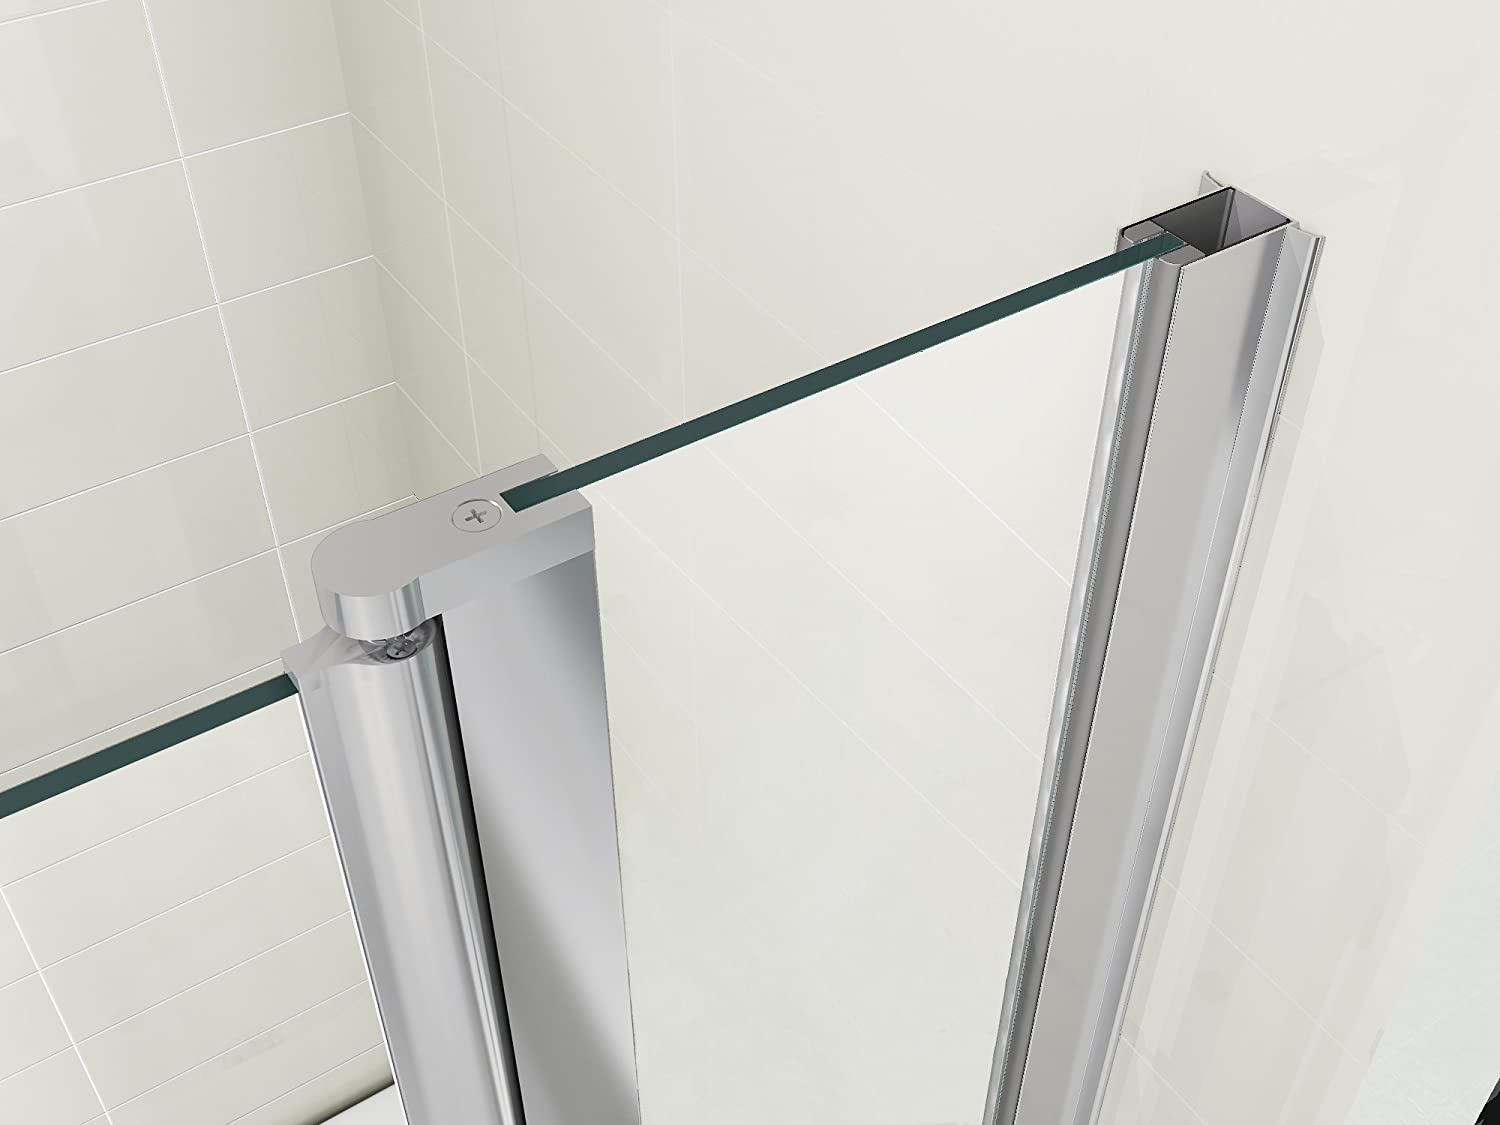 hnnhome 180 pivot double panel over bath shower screen 6 mm glass hnnhome 180 pivot double panel over bath shower screen 6 mm glass amazon co uk kitchen home